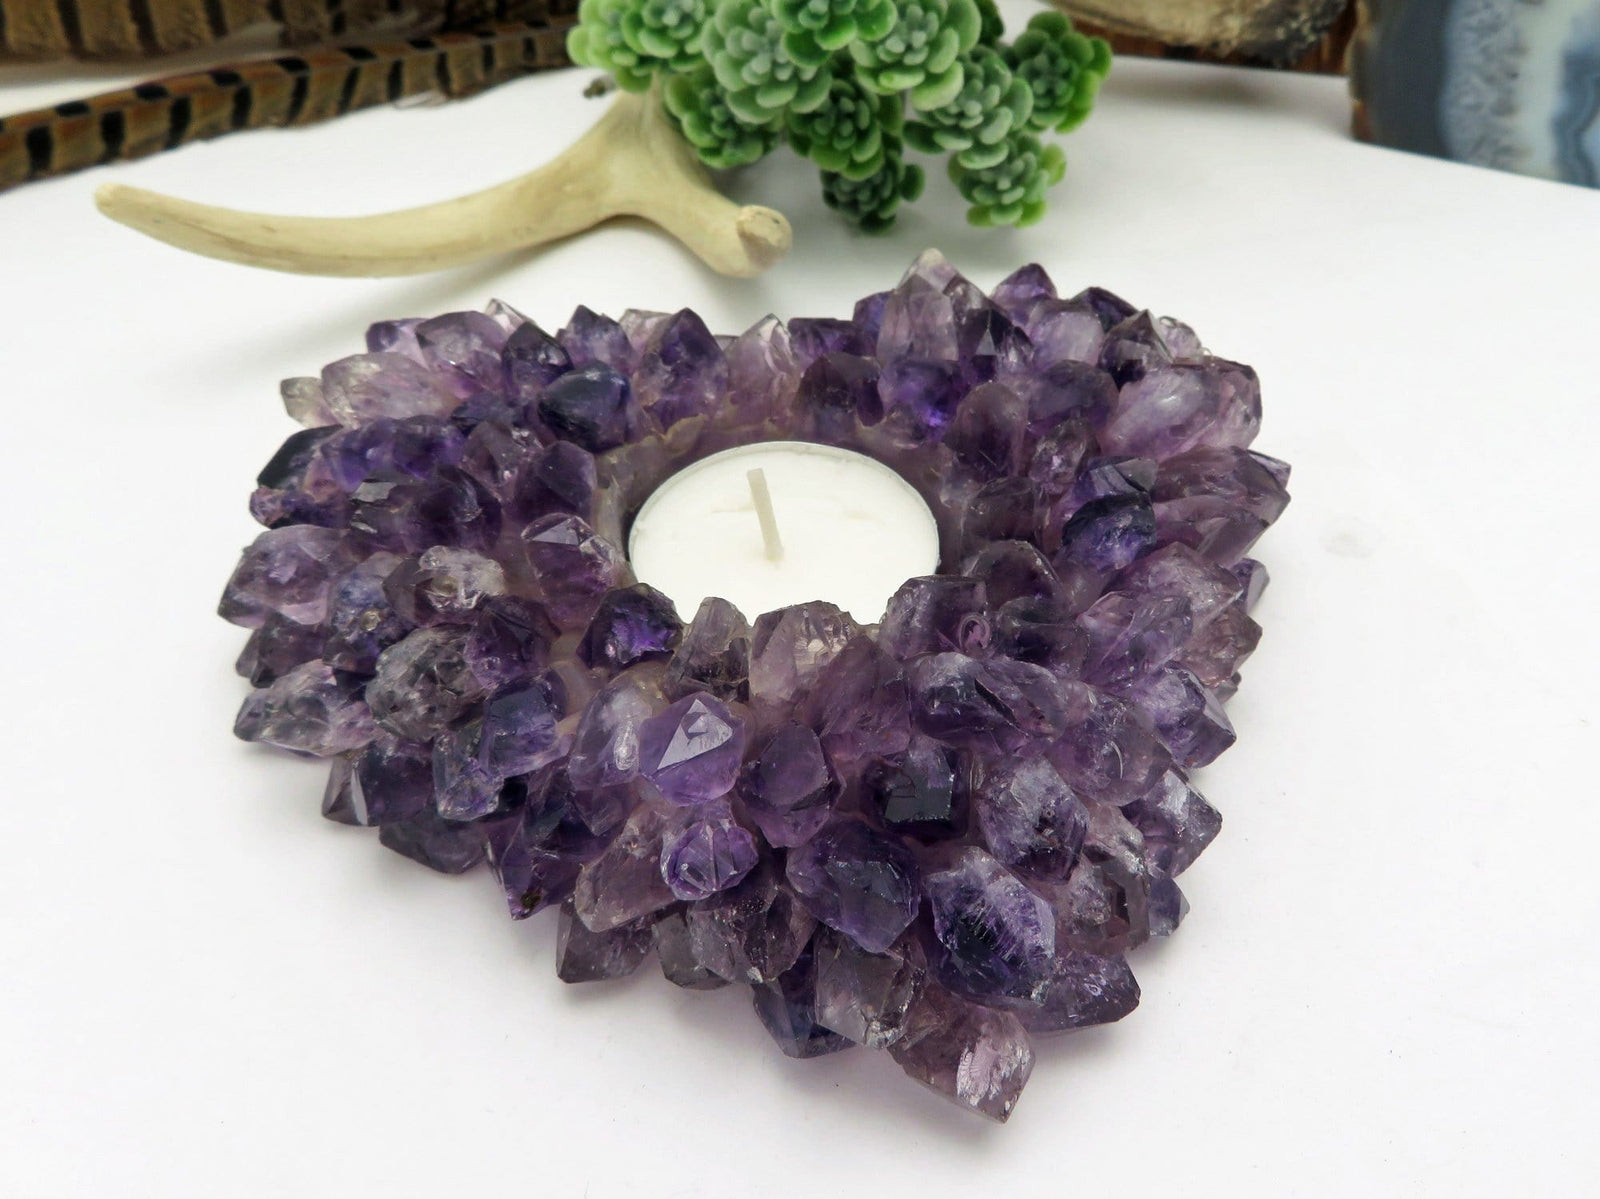 Amethyst Point Candle Holder Heart Shape - Crystal Decor- Metaphysical - Chakra Crystals (HW4-48)